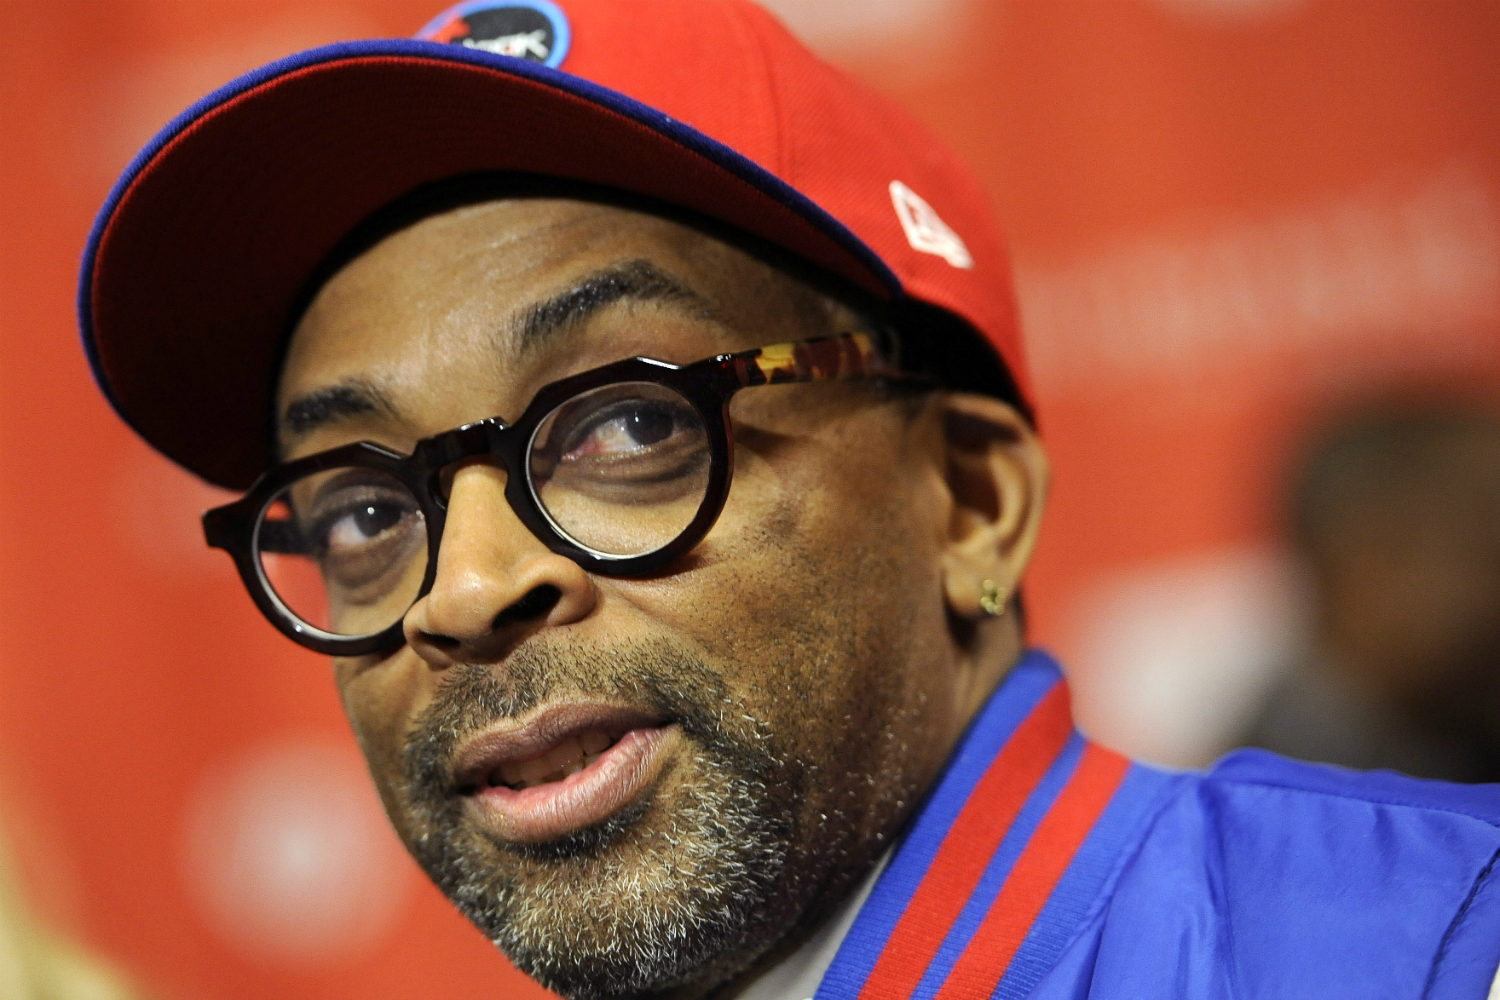 Spike Lee Is Boycotting the Oscars